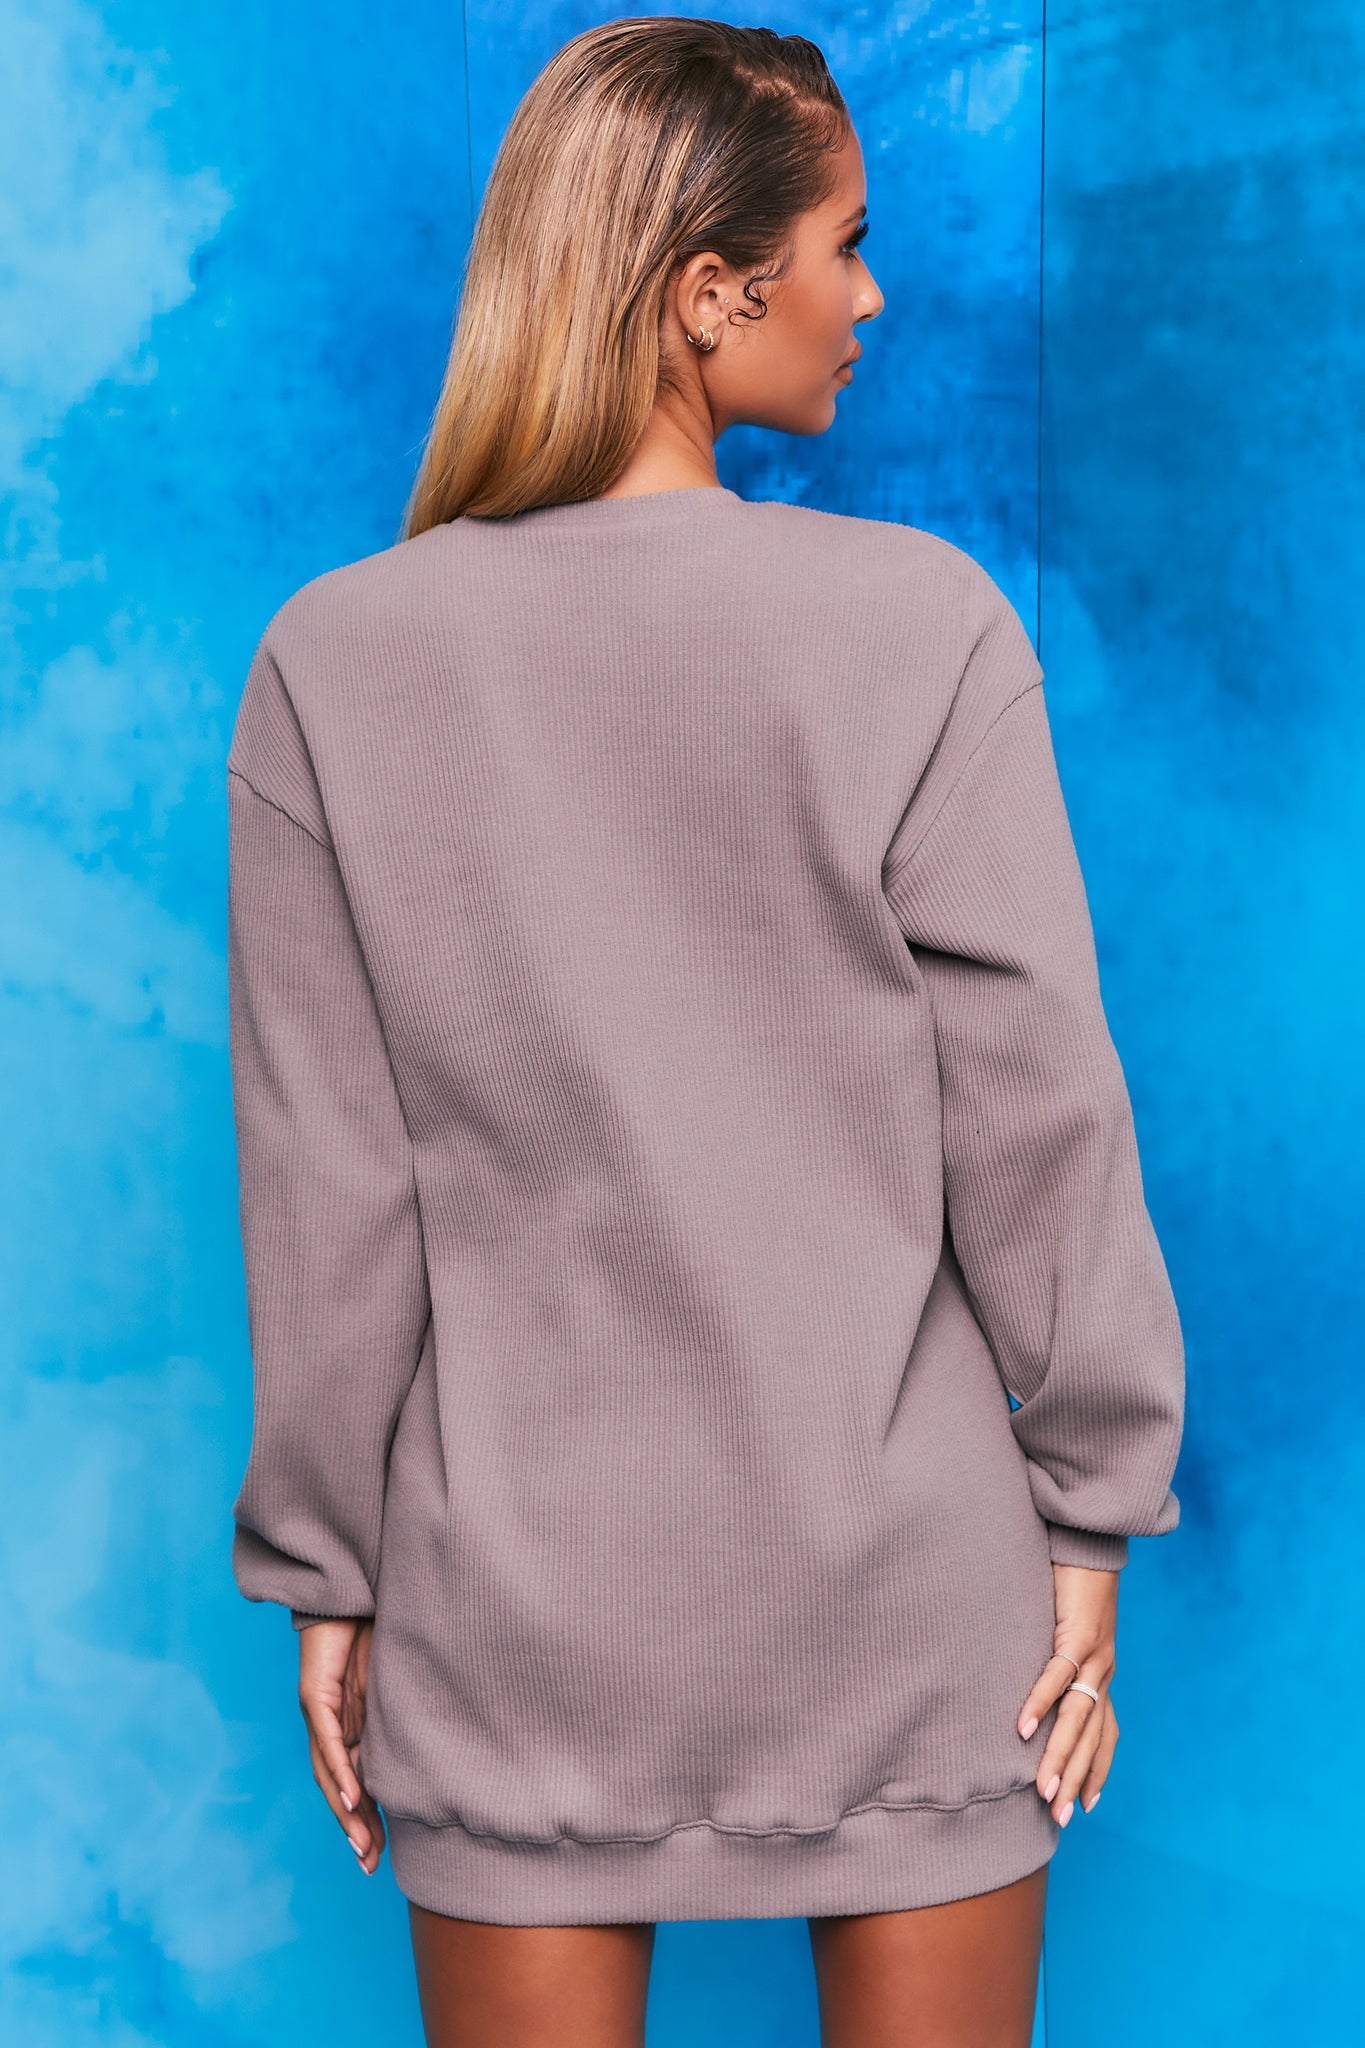 Plain grey ribbed oversized sweatshirt with long sleeves. Image 3 of 6.